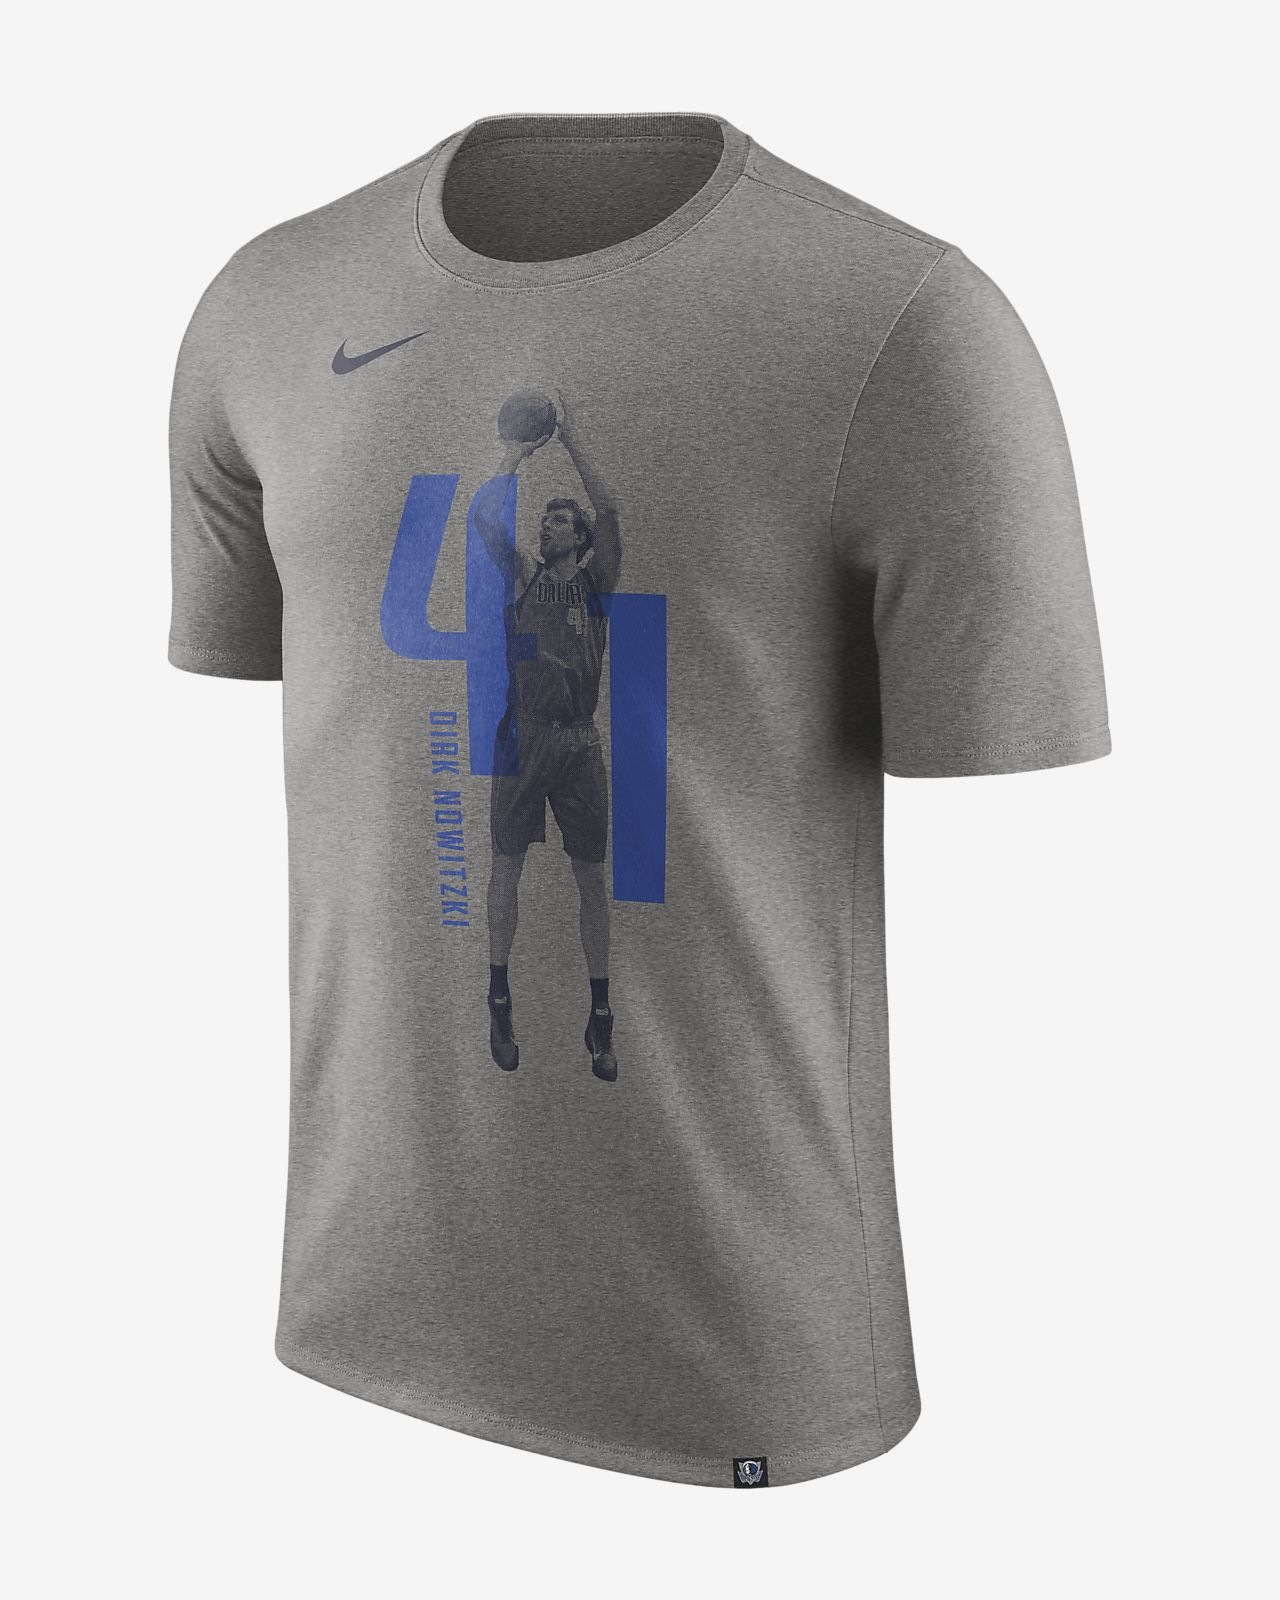 Dirk Nowitzki Dallas Mavericks Nike Dry Men's NBA T-Shirt